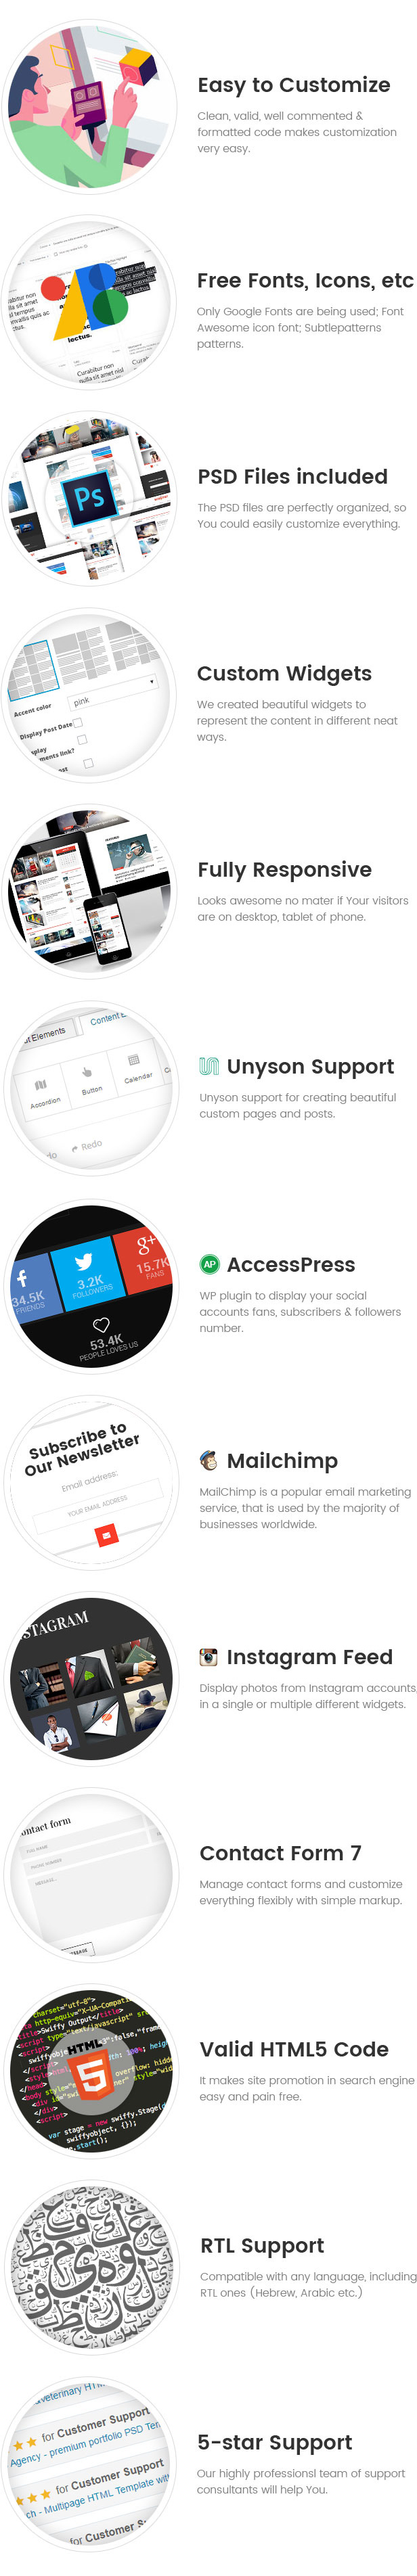 Scientist - innovations and research news magazine WordPress theme